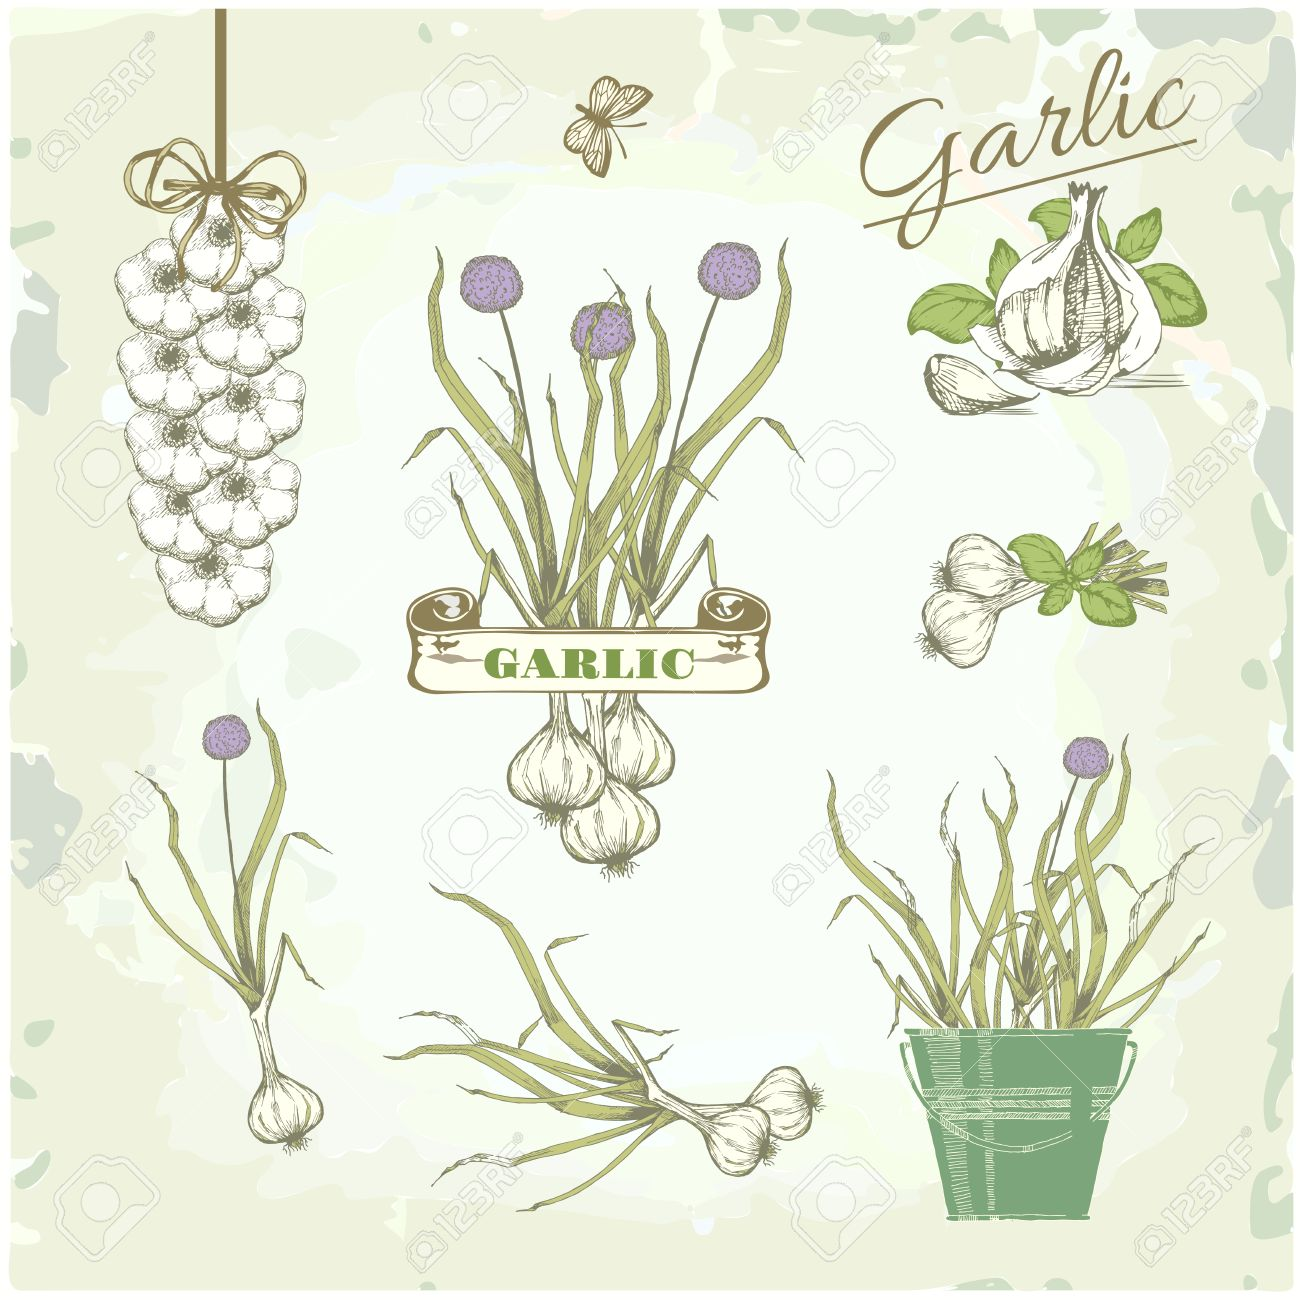 Garlic Vegetables Herb Plant Cusine Vintage Background Packaging Royalty Free Cliparts Vectors And Stock Illustration Image 23075806